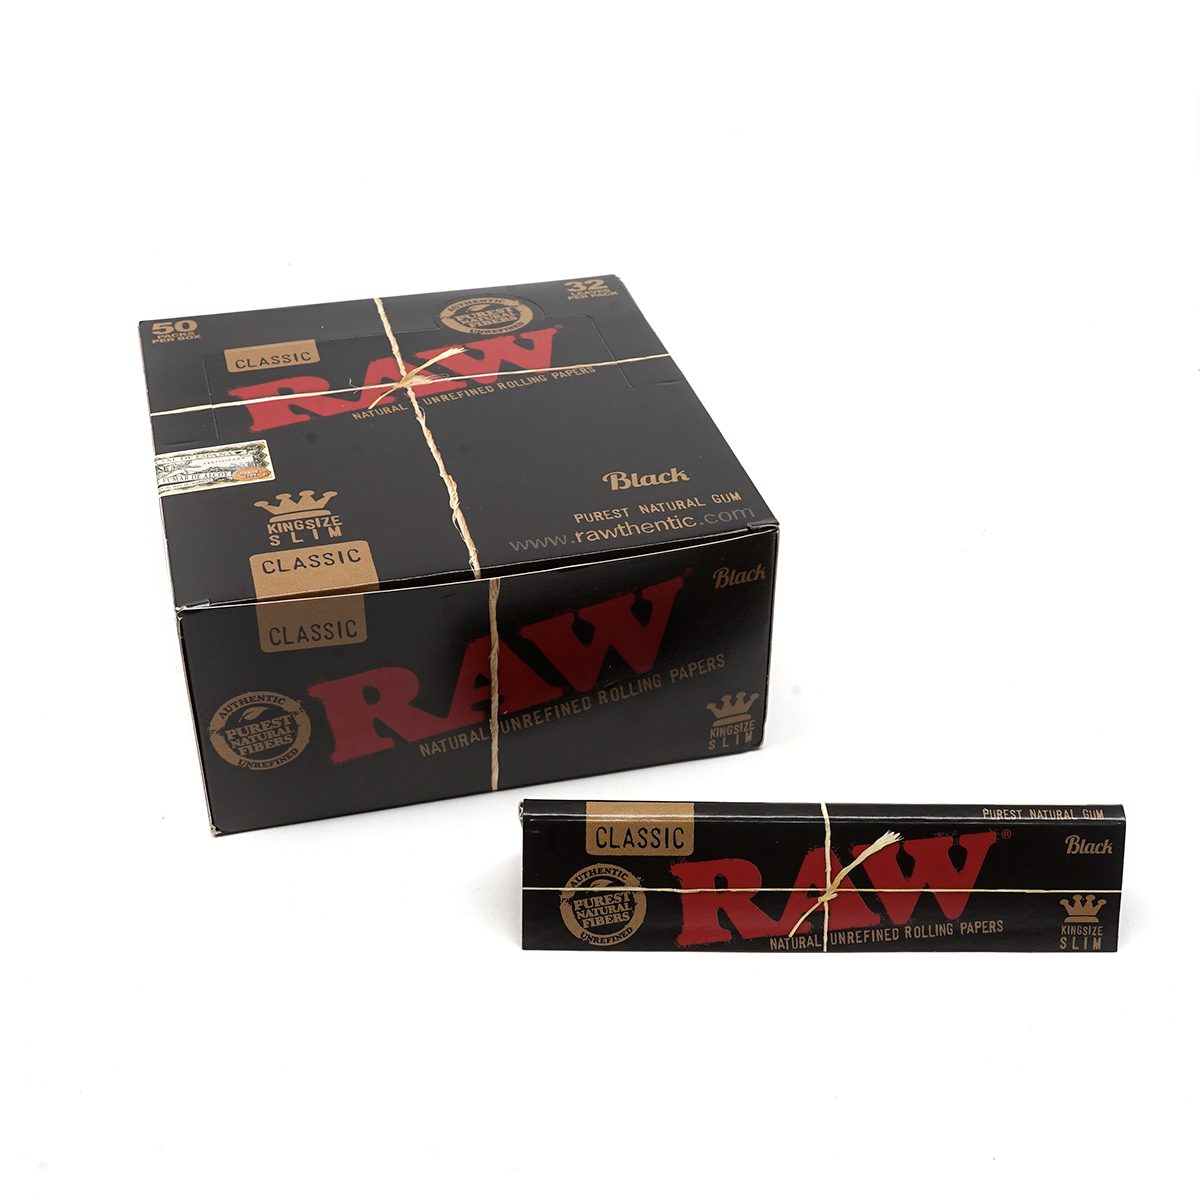 RAW Black Classic King Size Slim 10 PACKS Rolling Papers Ultra Thin Pressed